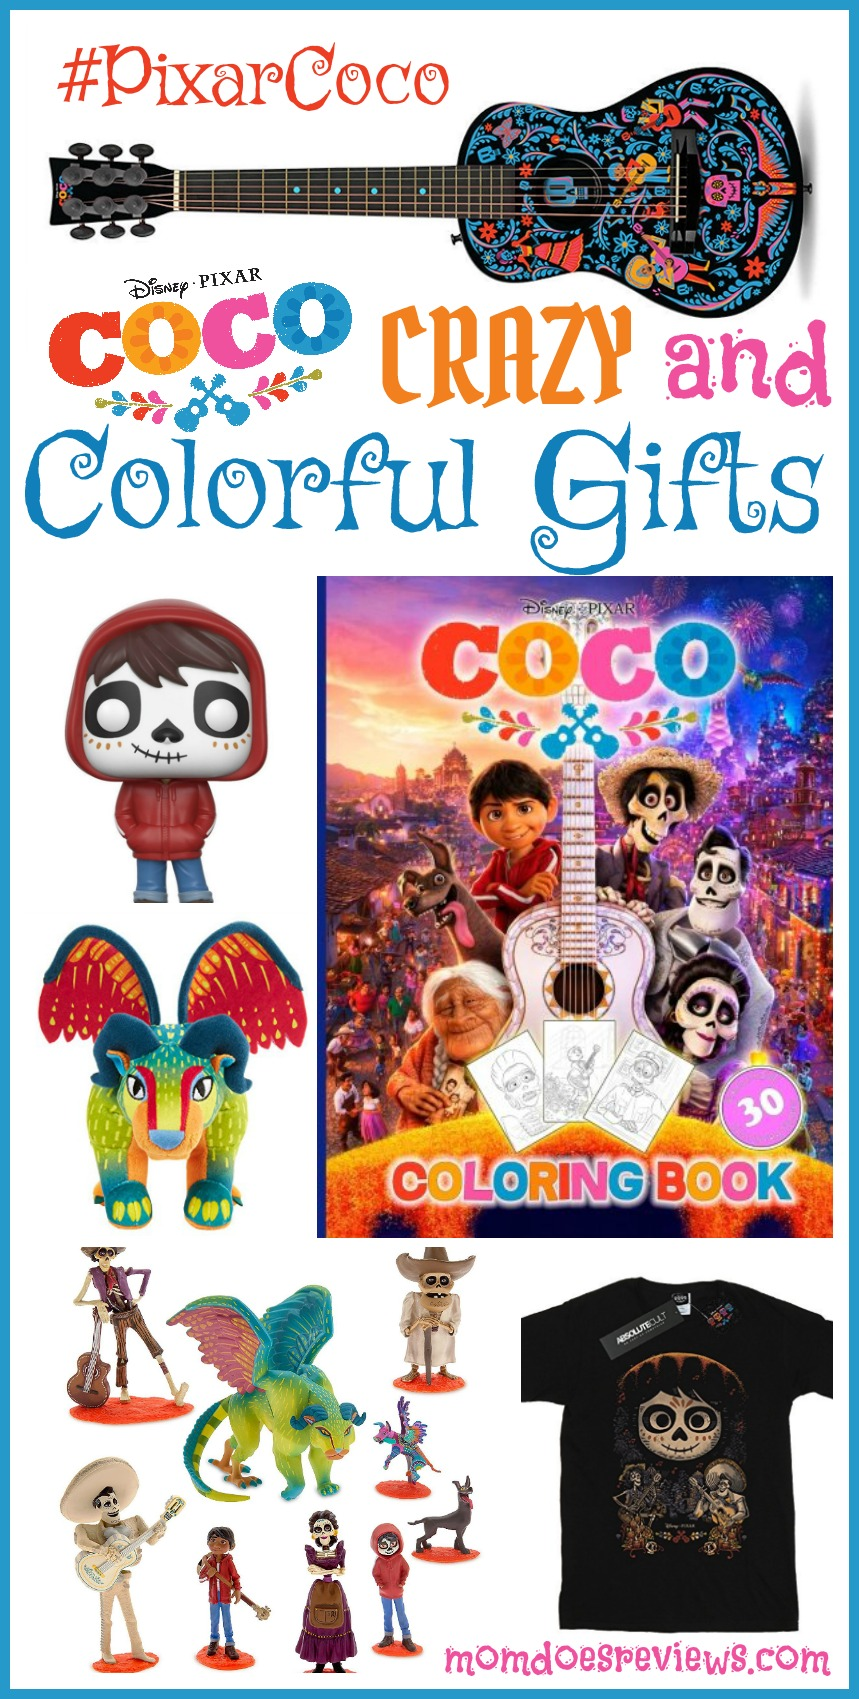 Disney Pixar's Coco Crazy and Colorful Gifts